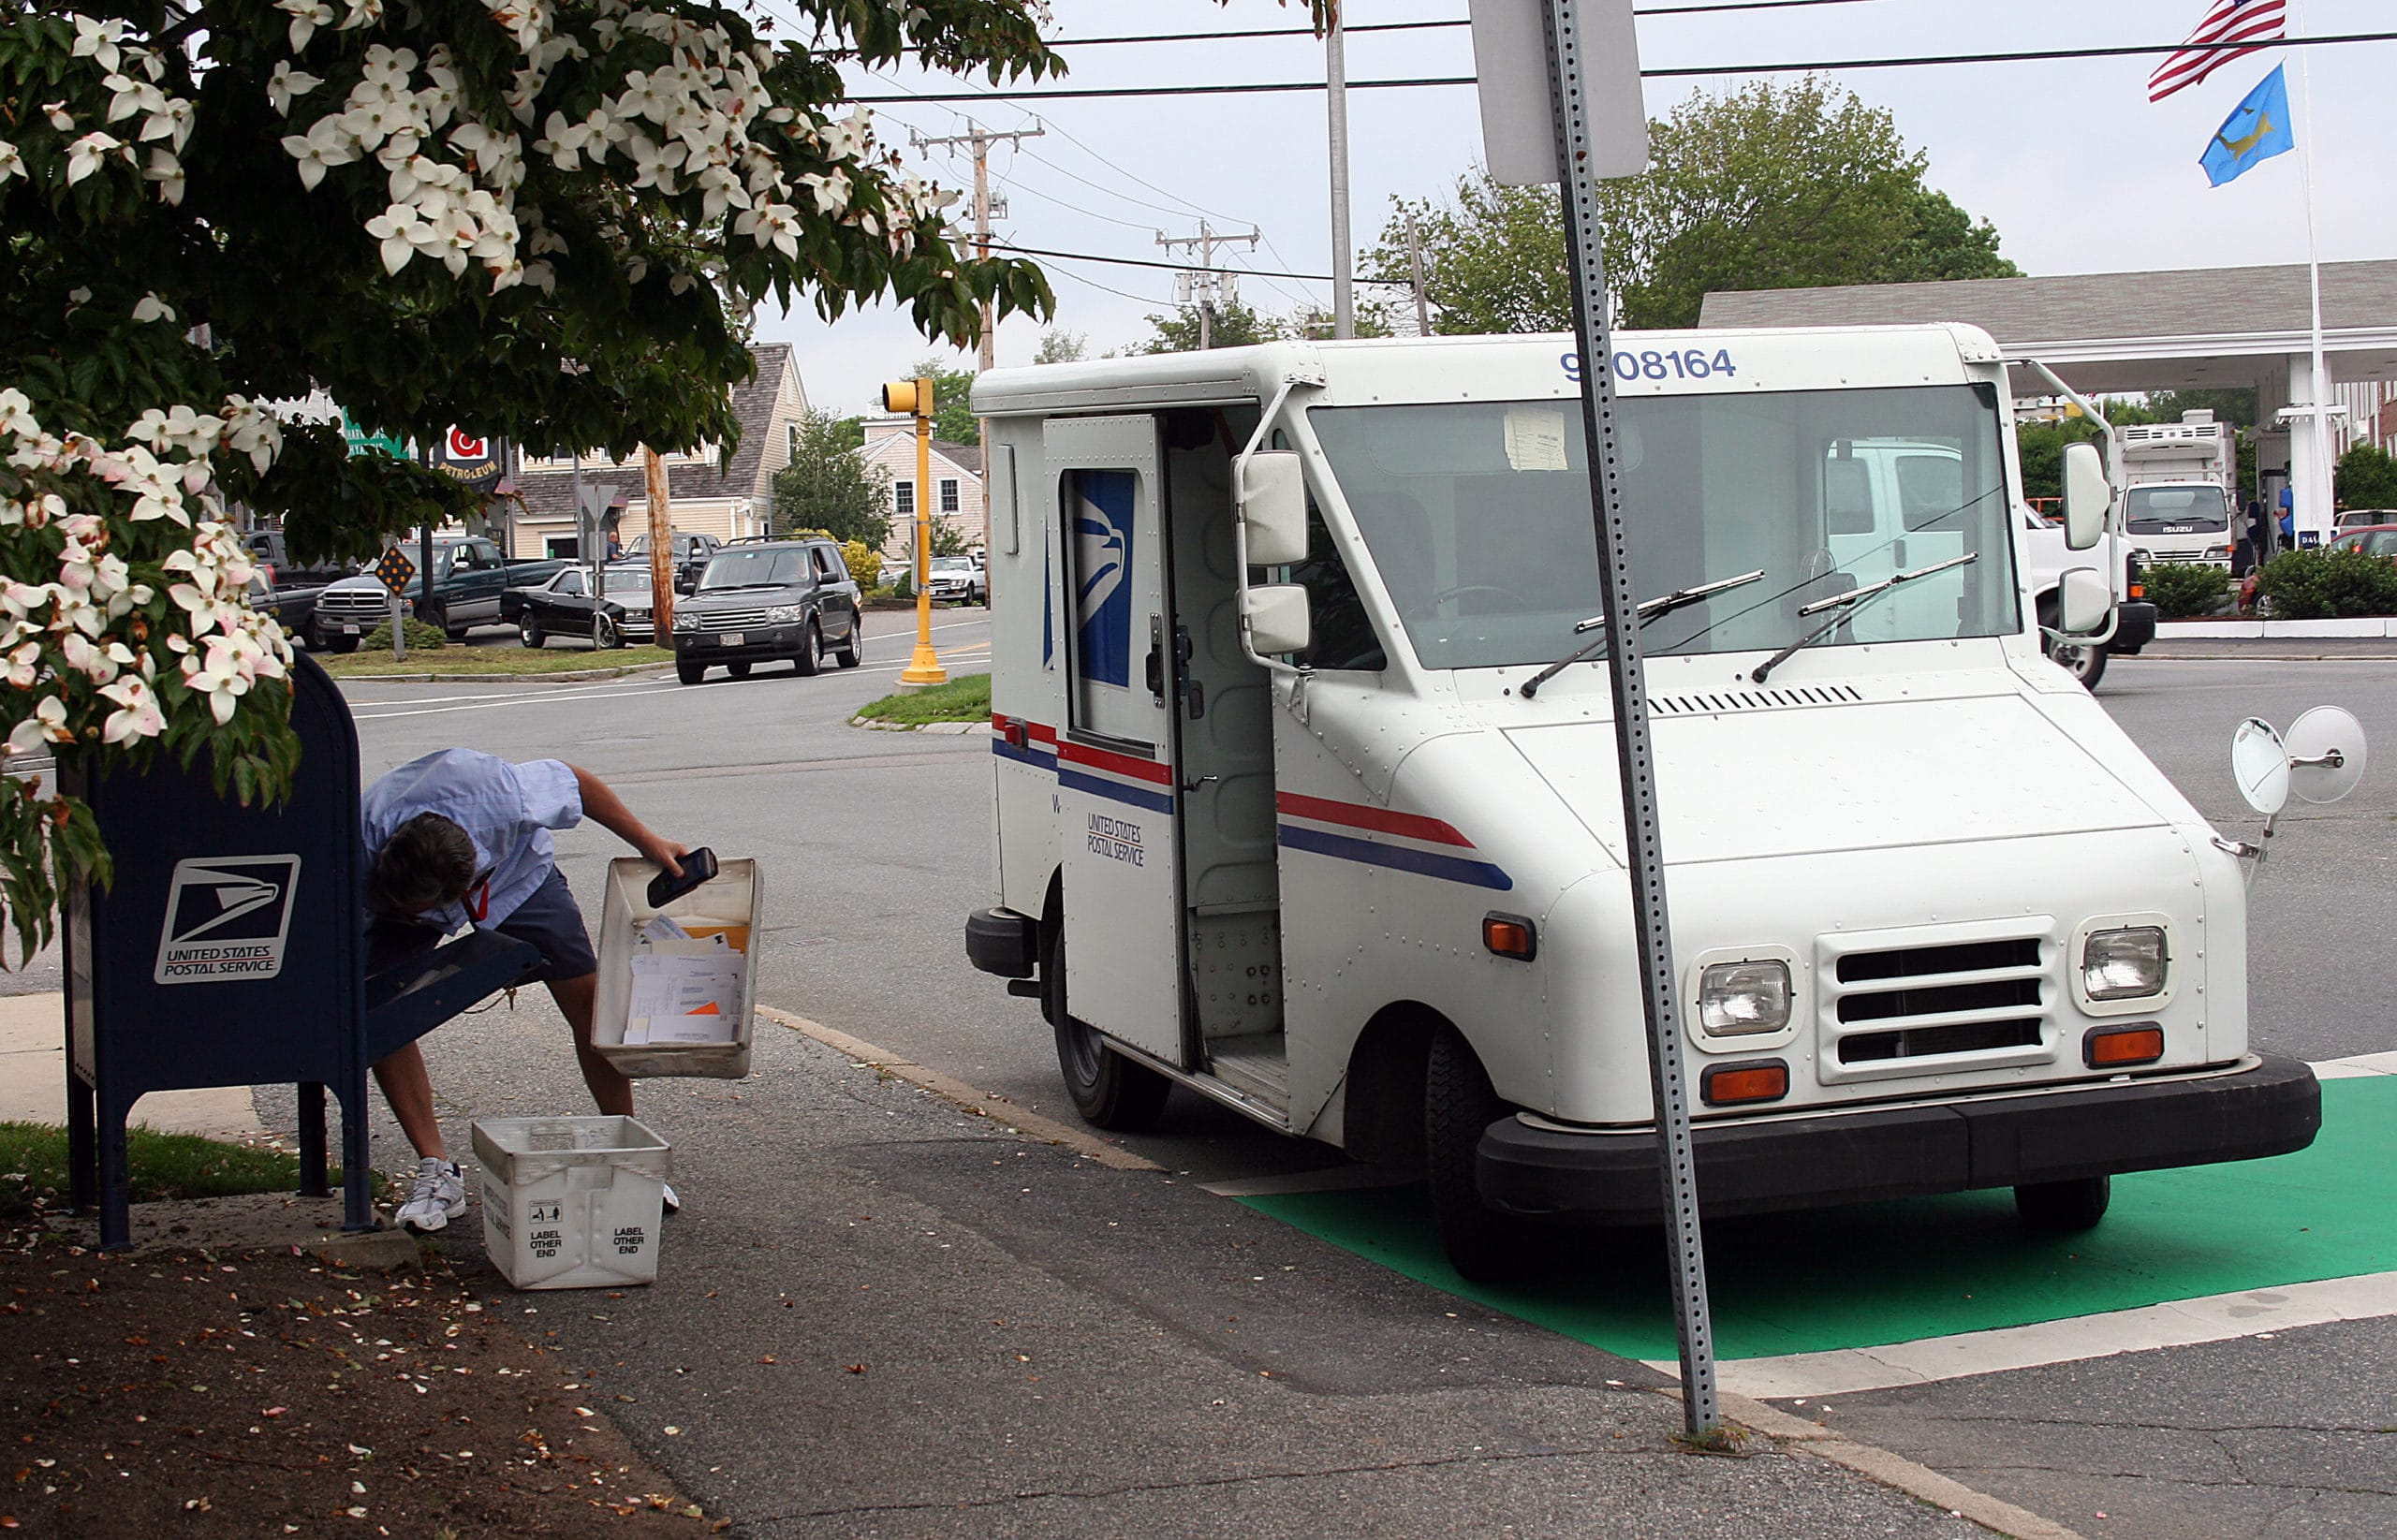 To deliver or not deliver: Facing privatization and long-term impacts on the U.S. Postal Service